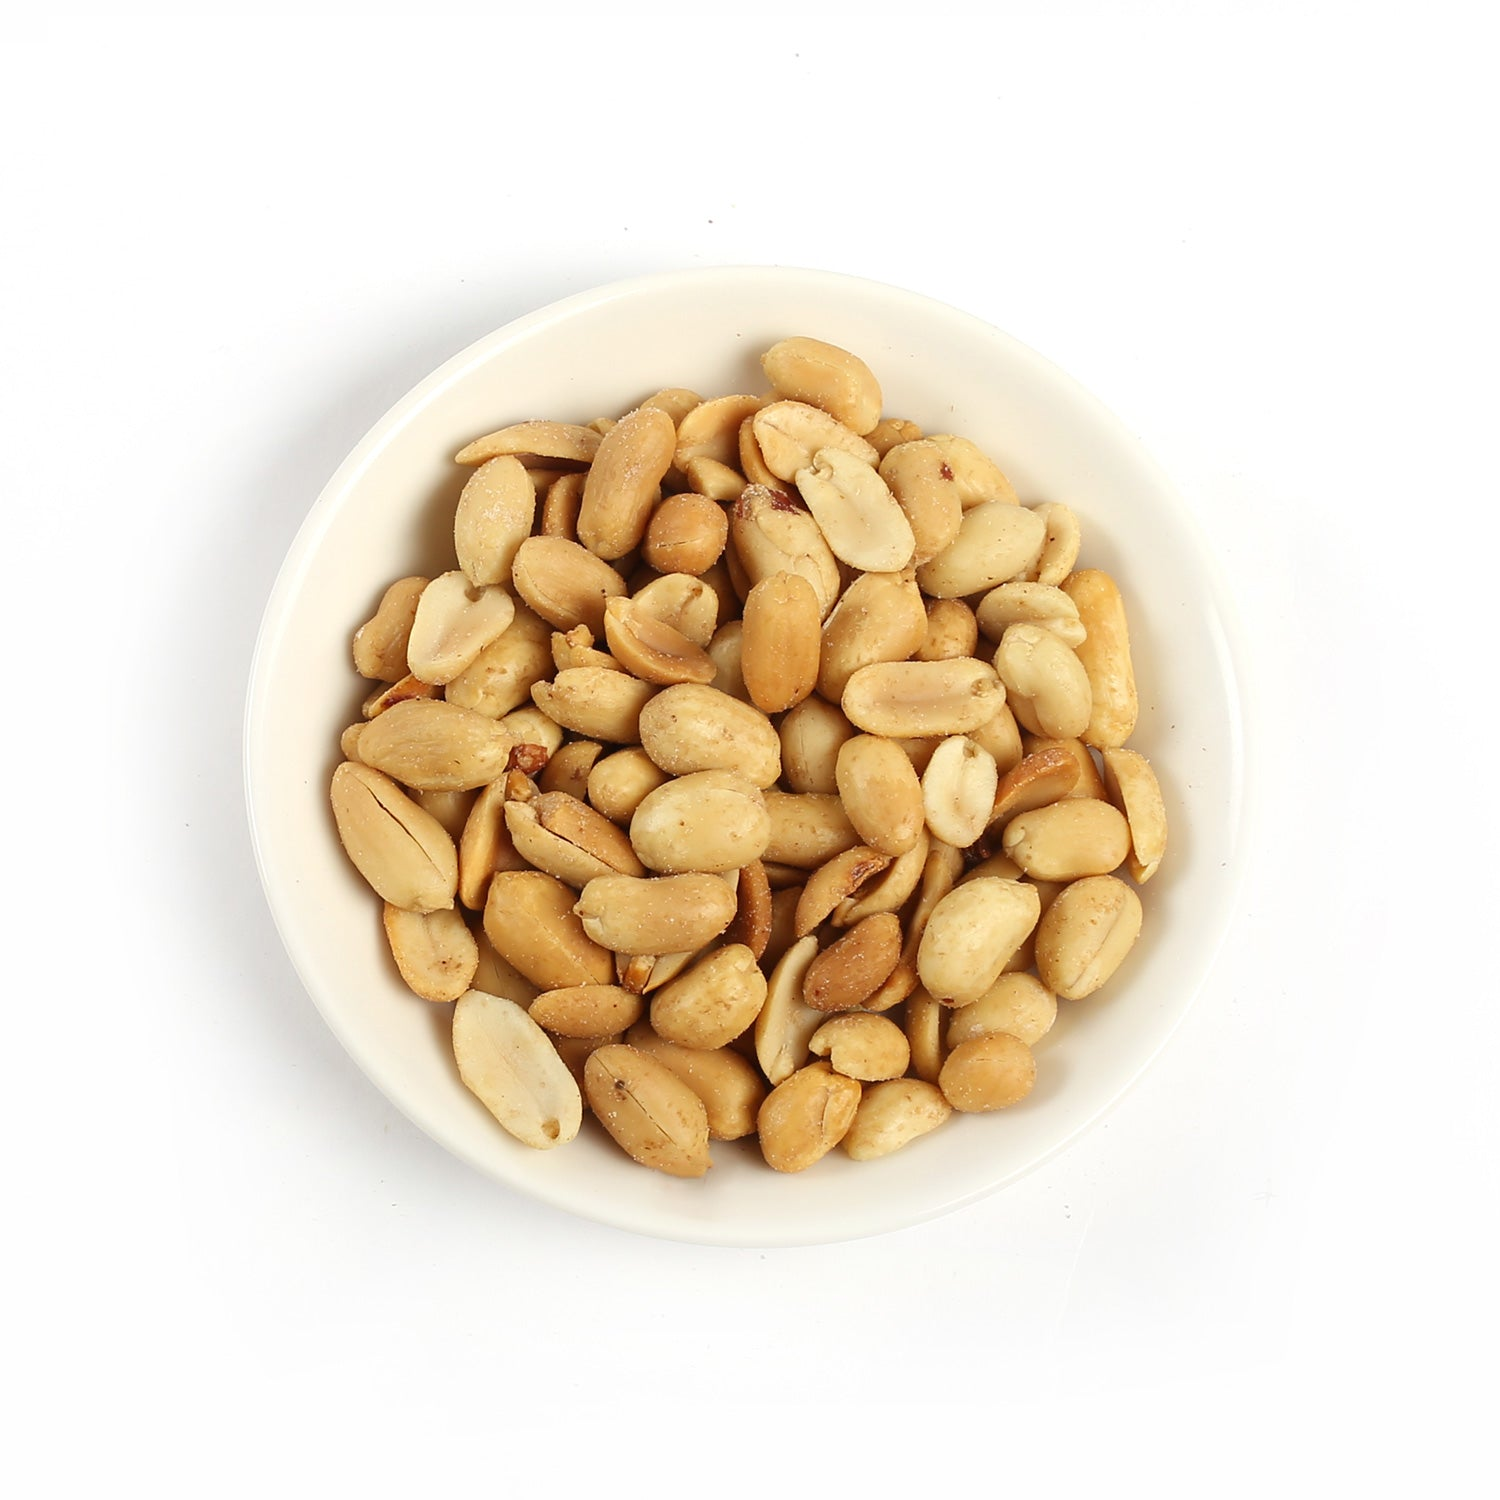 Product photo of blanched peanuts.